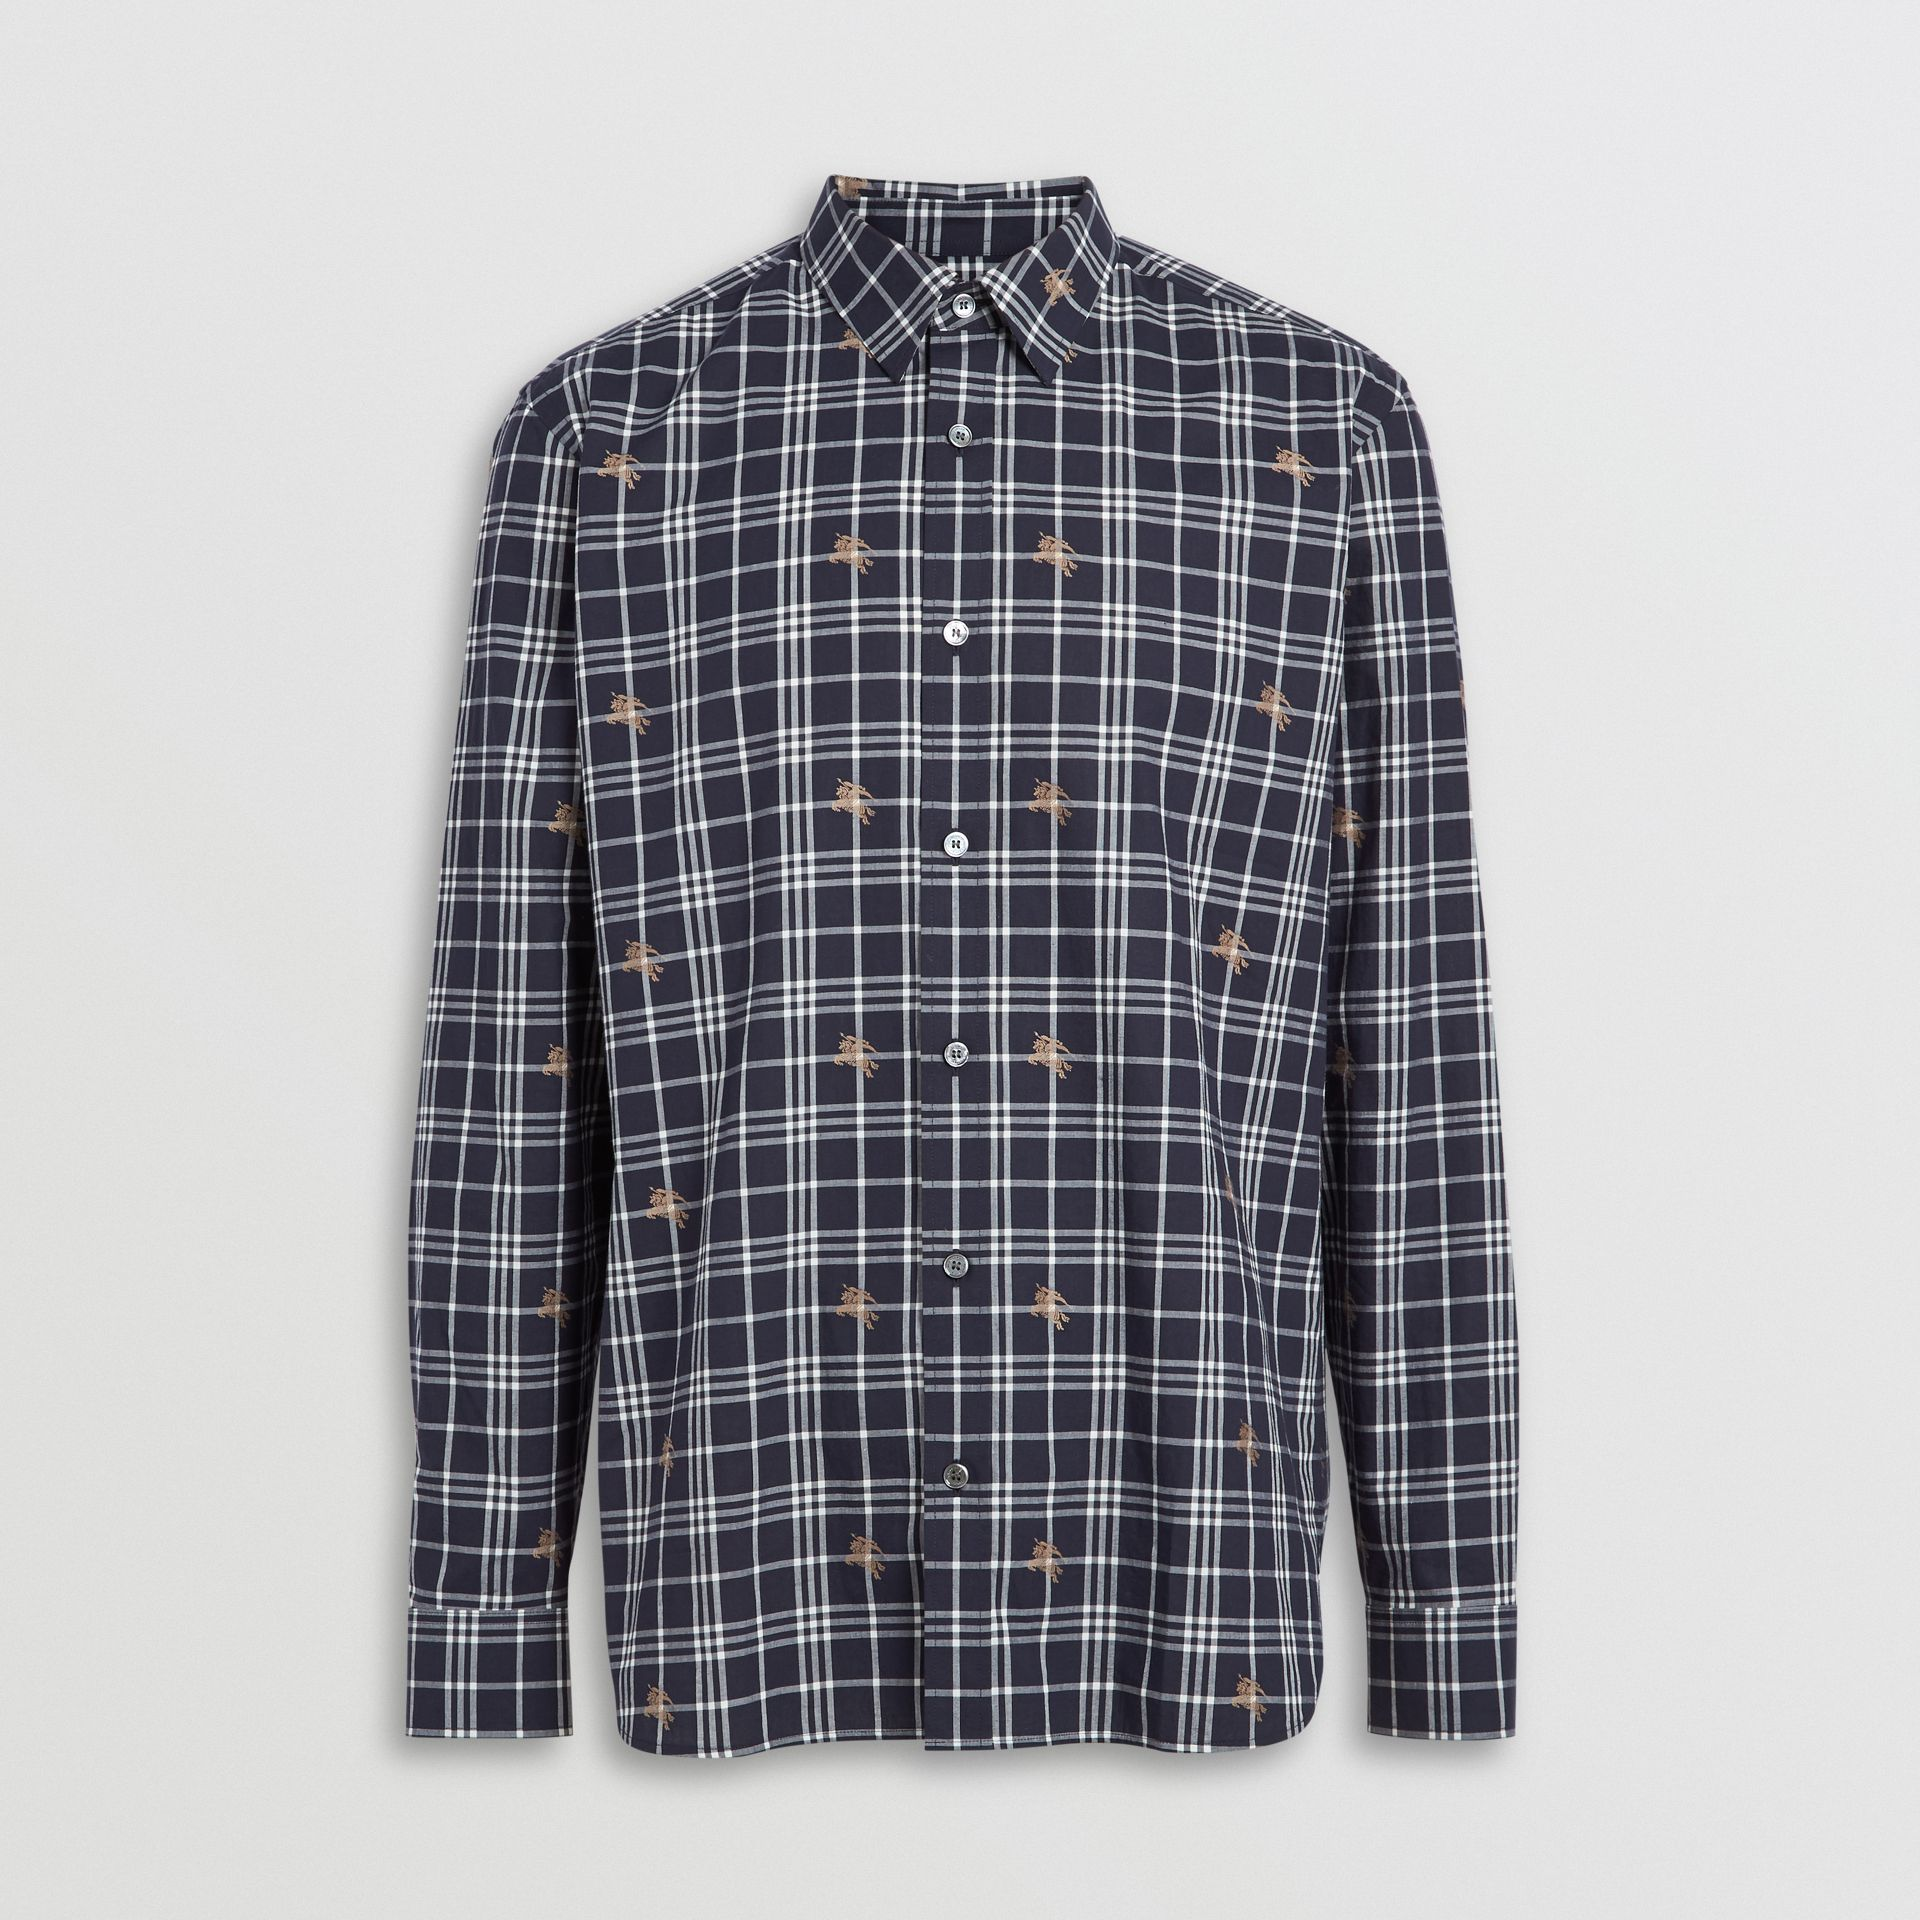 Equestrian Knight Check Cotton Shirt in Navy - Men | Burberry Canada - gallery image 3